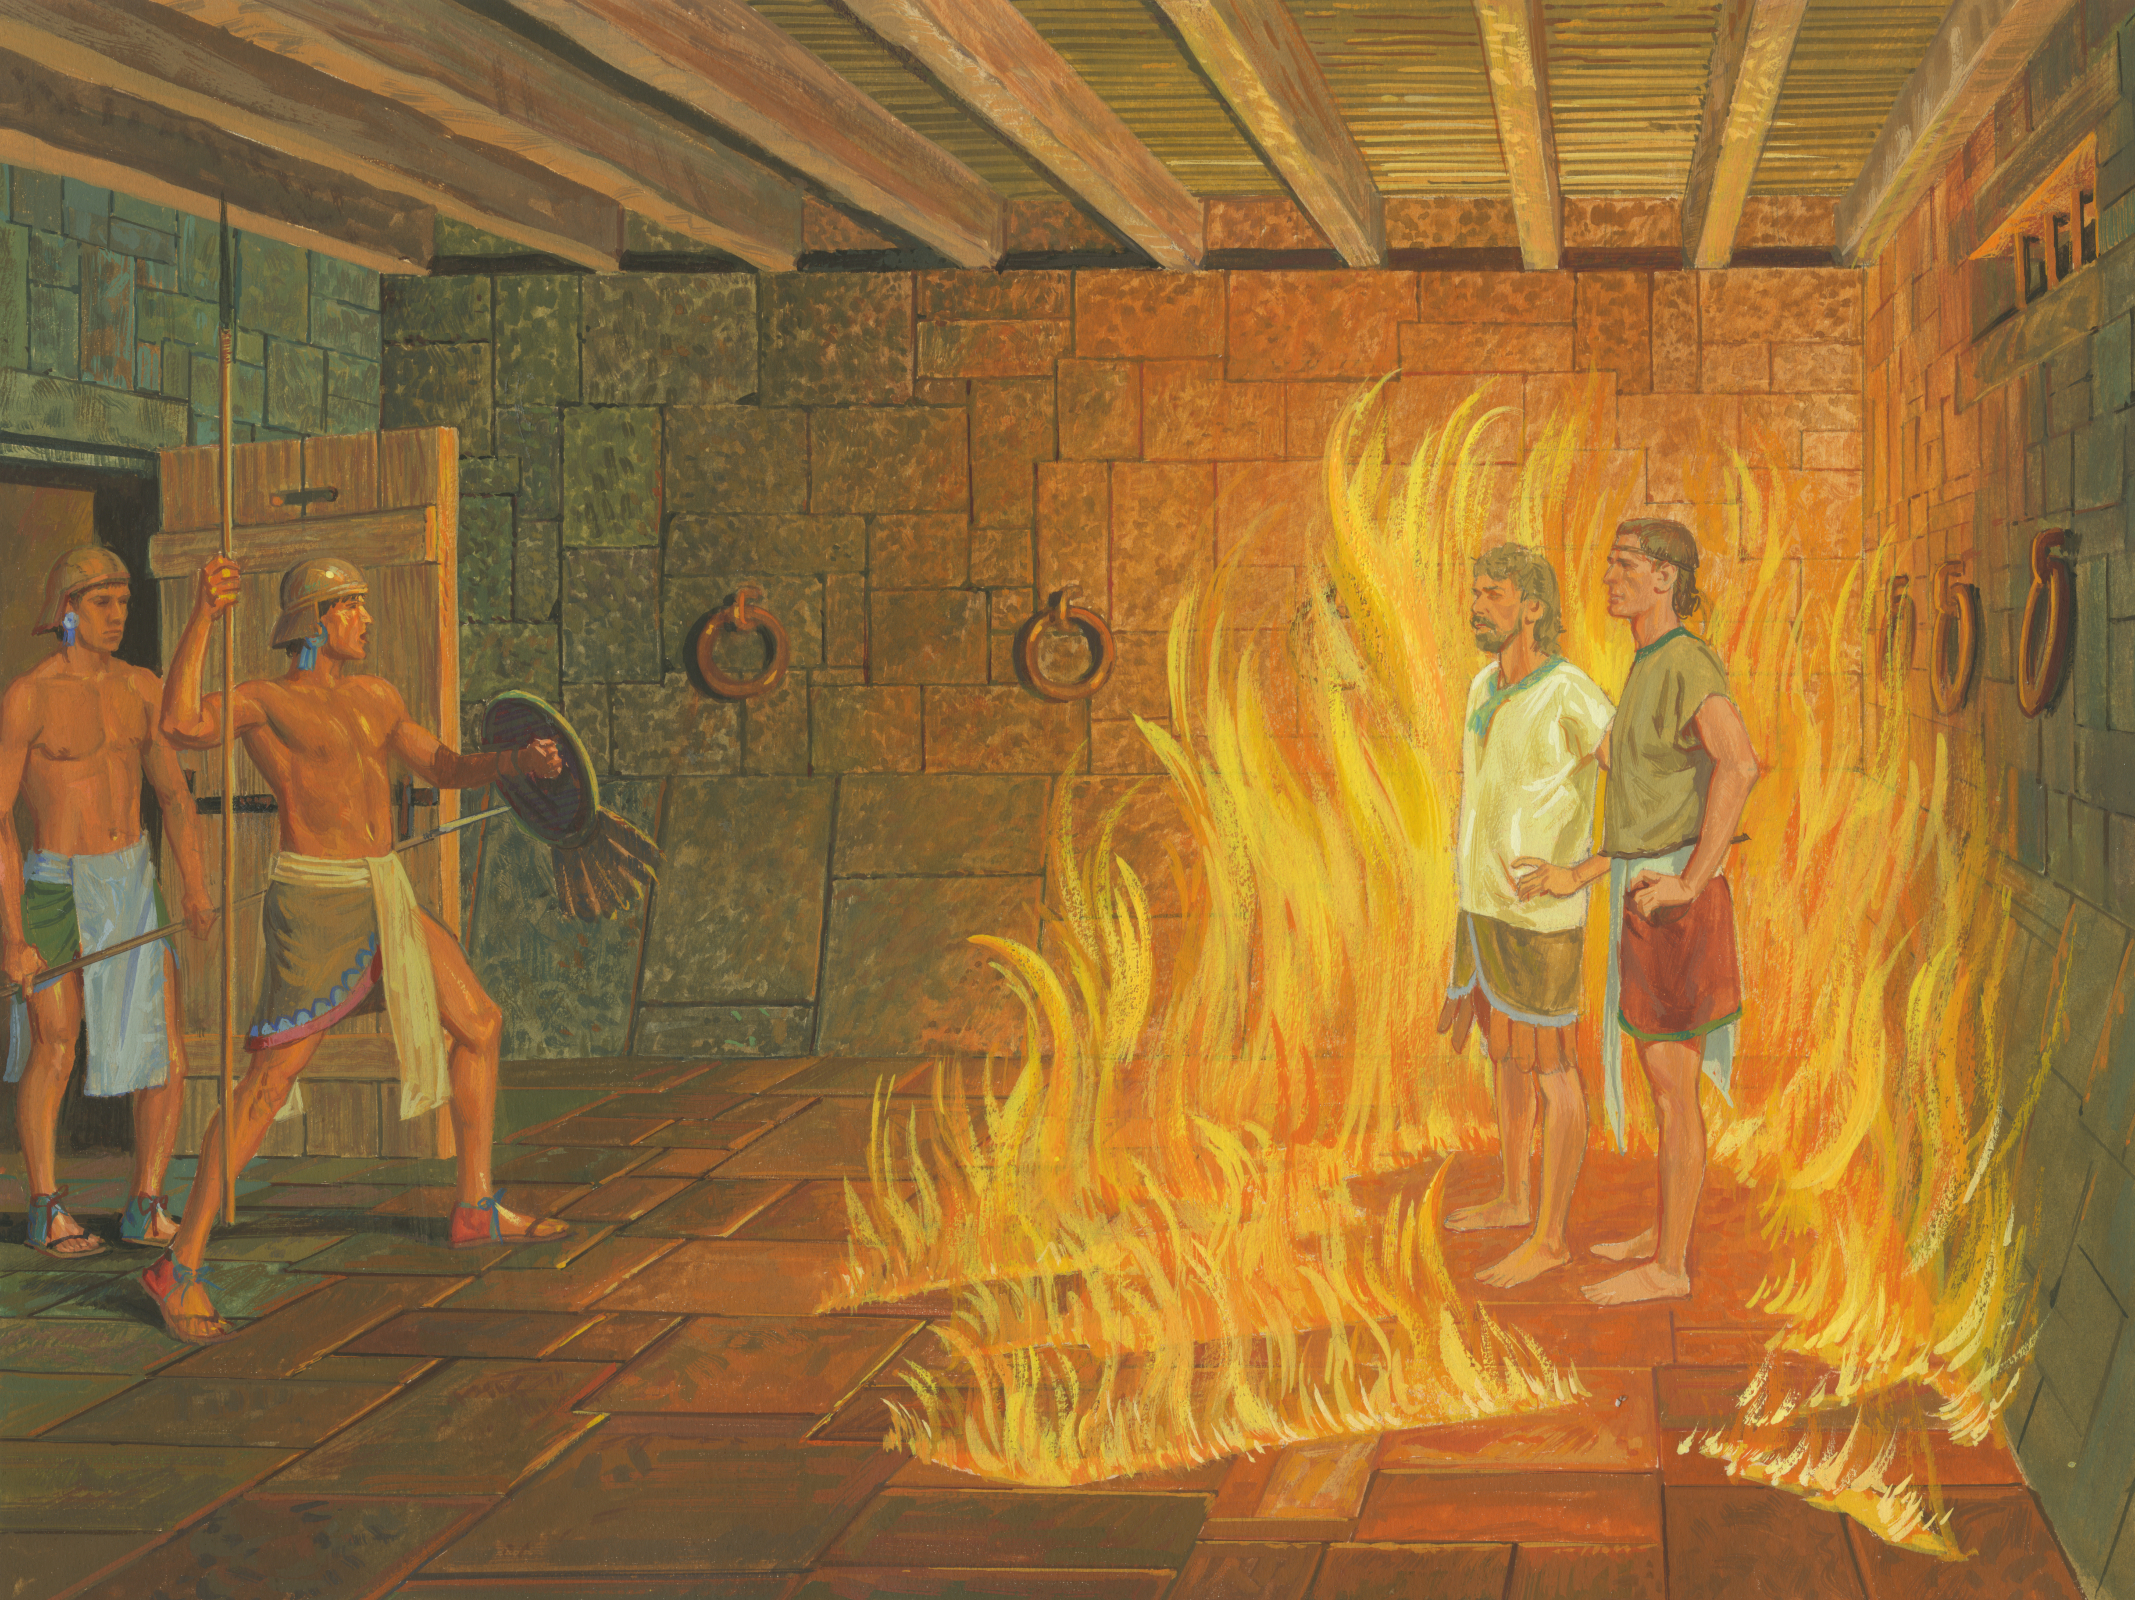 Brothers Wallpapers With Quotes Nephi And Lehi In Prison